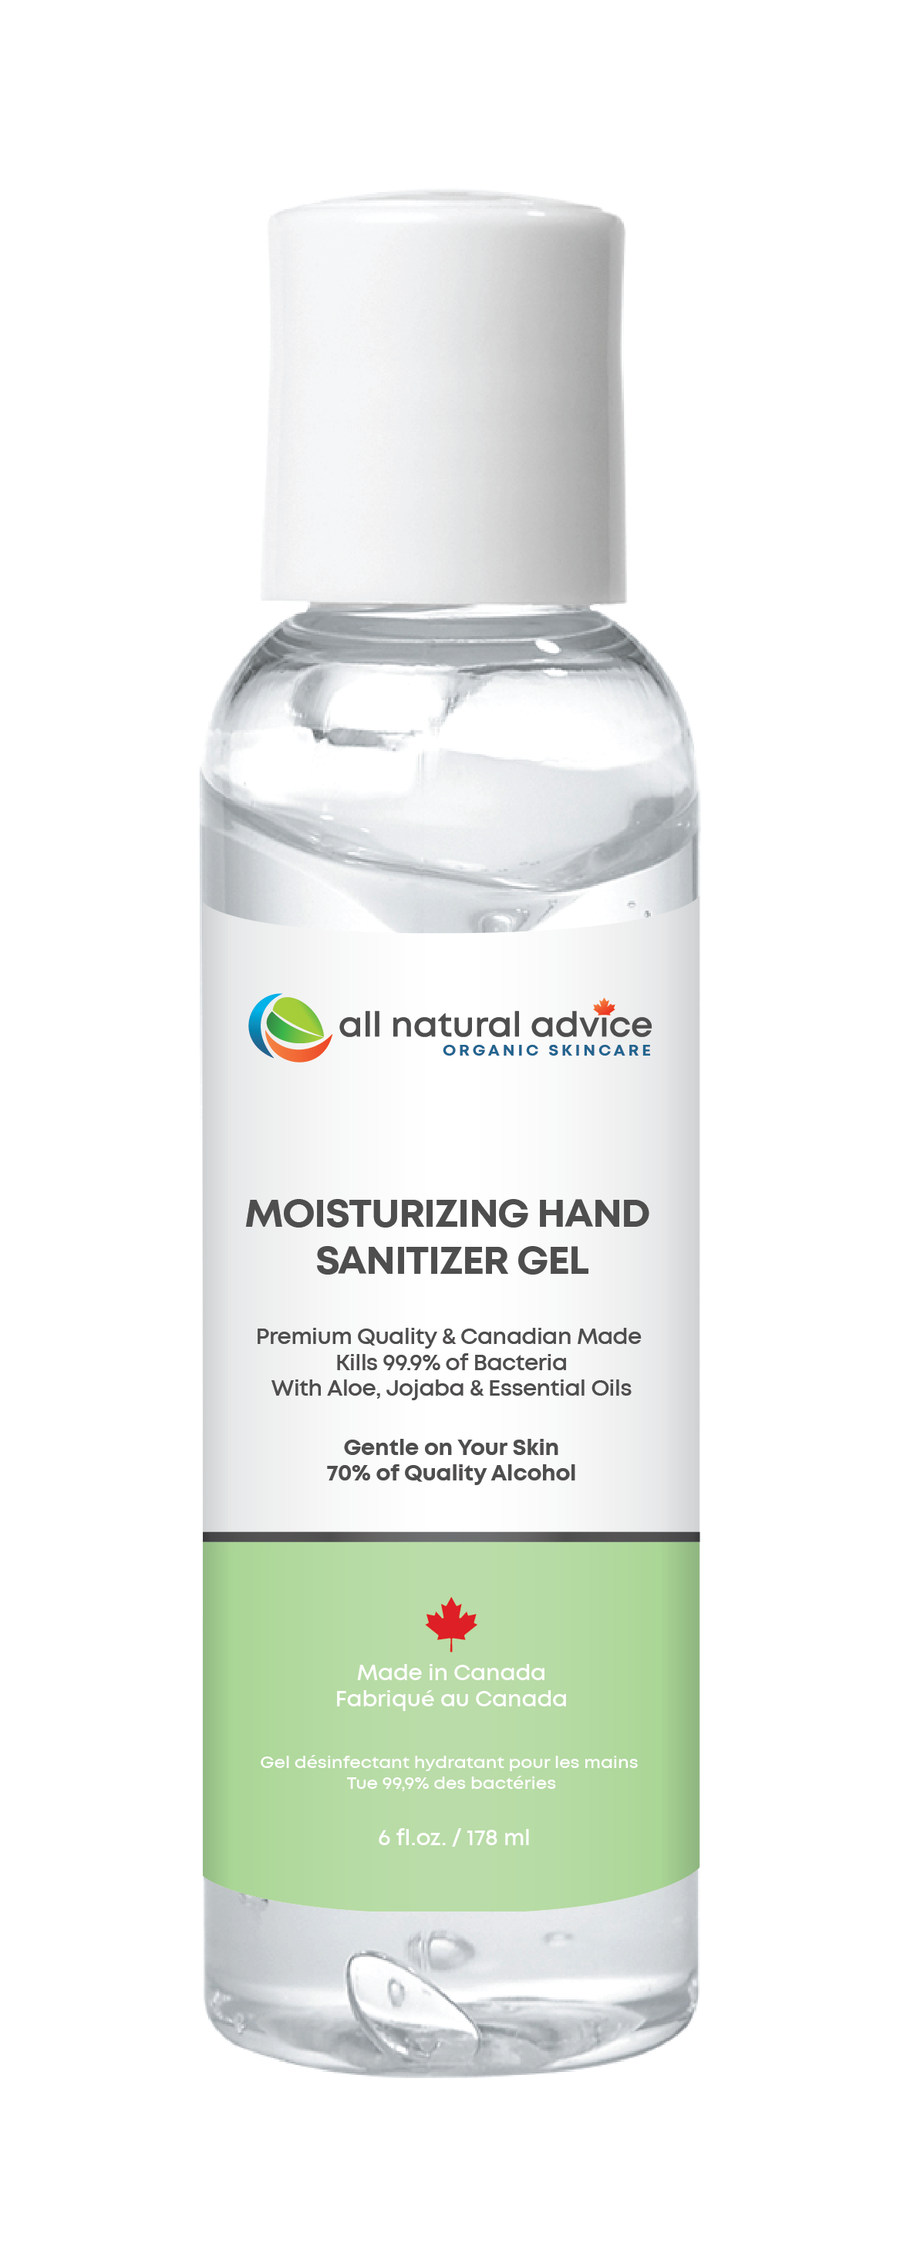 Advanced Hand Santizier - Kills 99.9% of Germs while Mositurzing Your Hands - 180 ml / 6 oz bottle